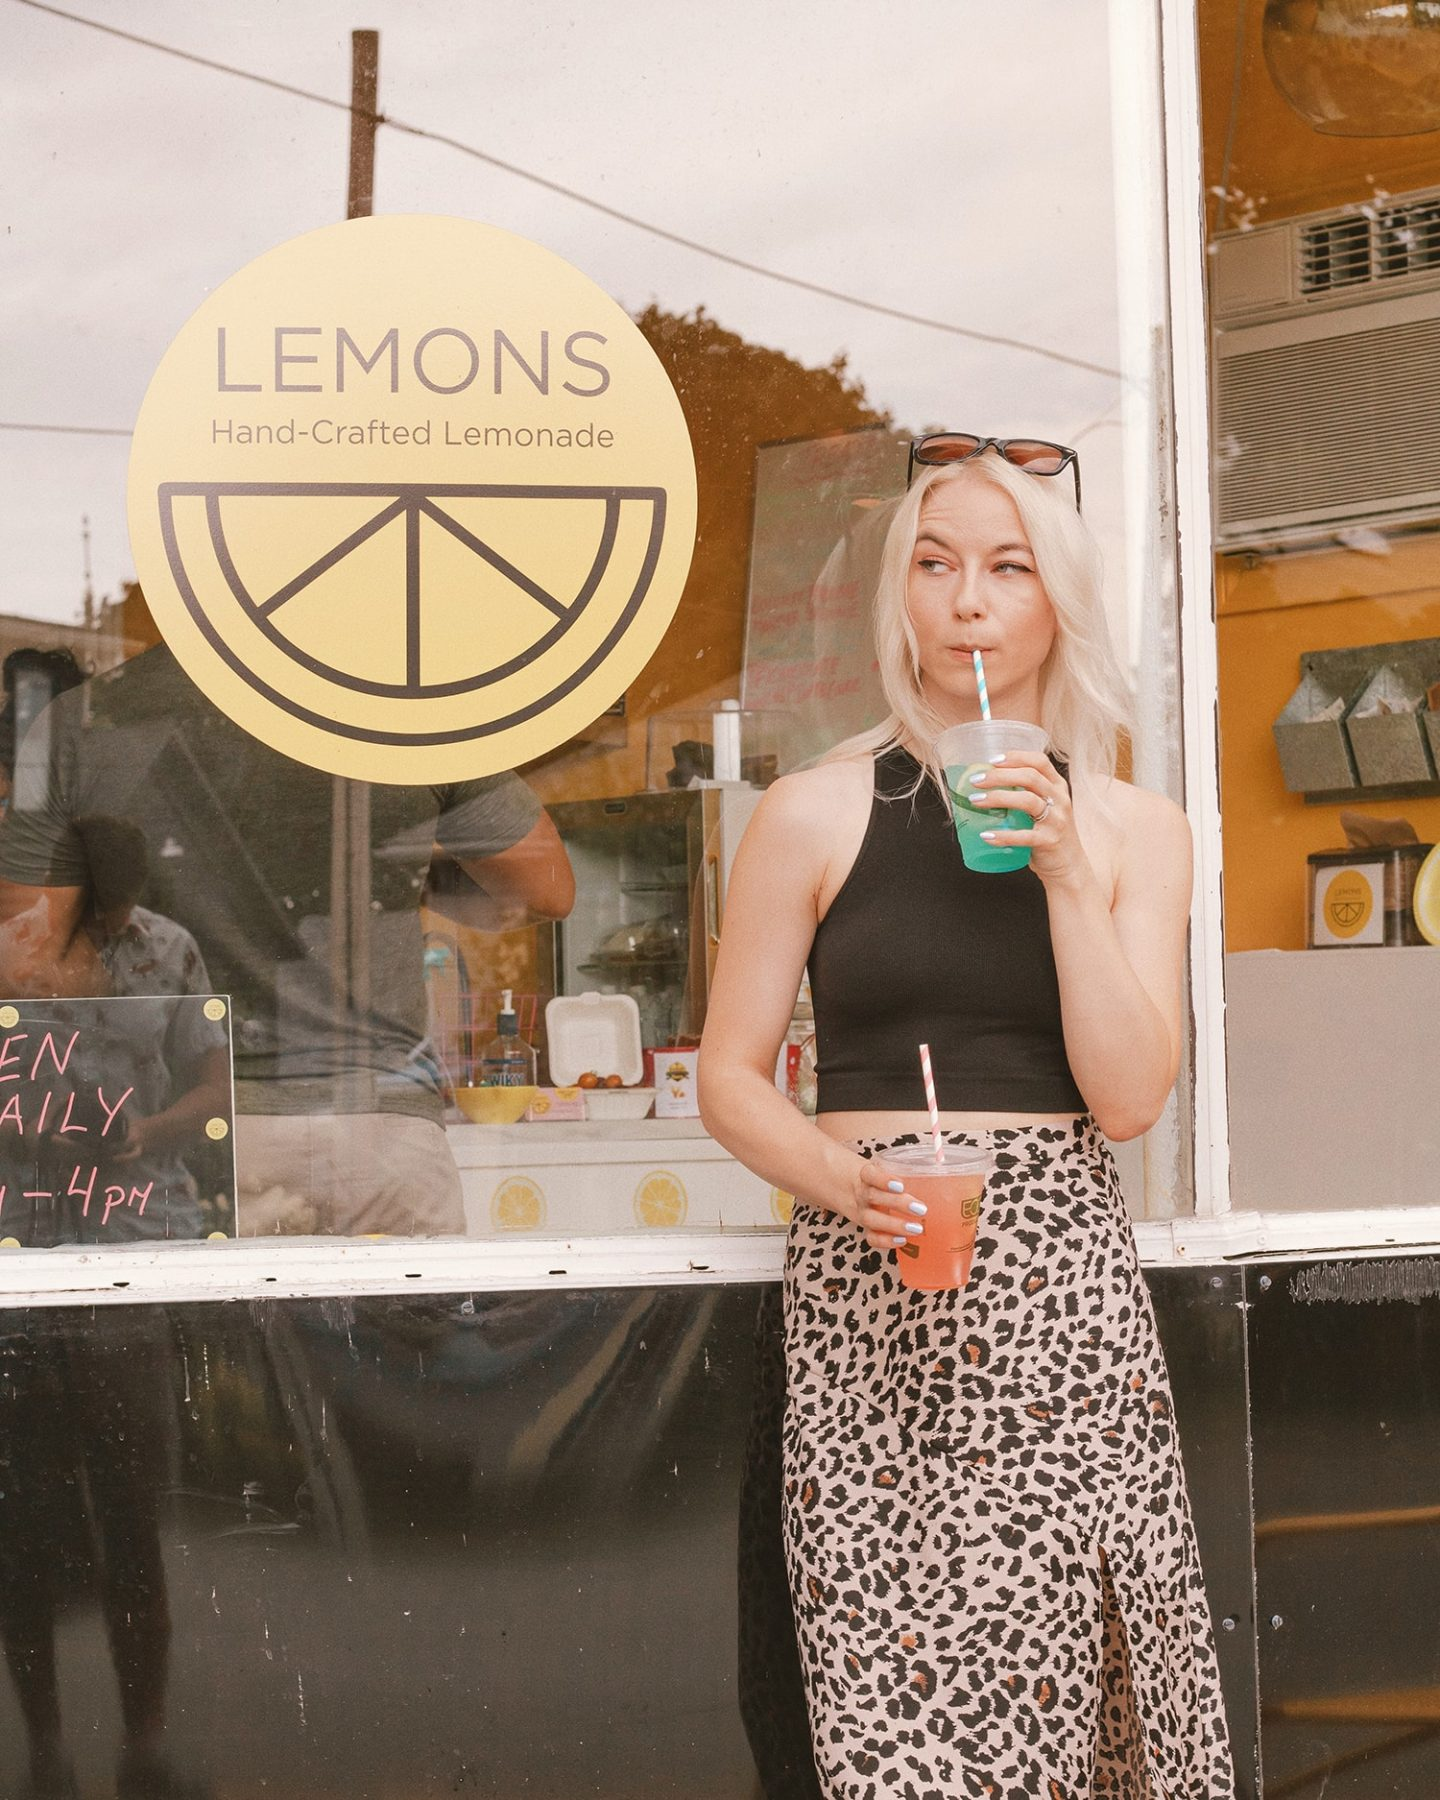 Lemons Lemonade shop Wellington in Prince Edward County